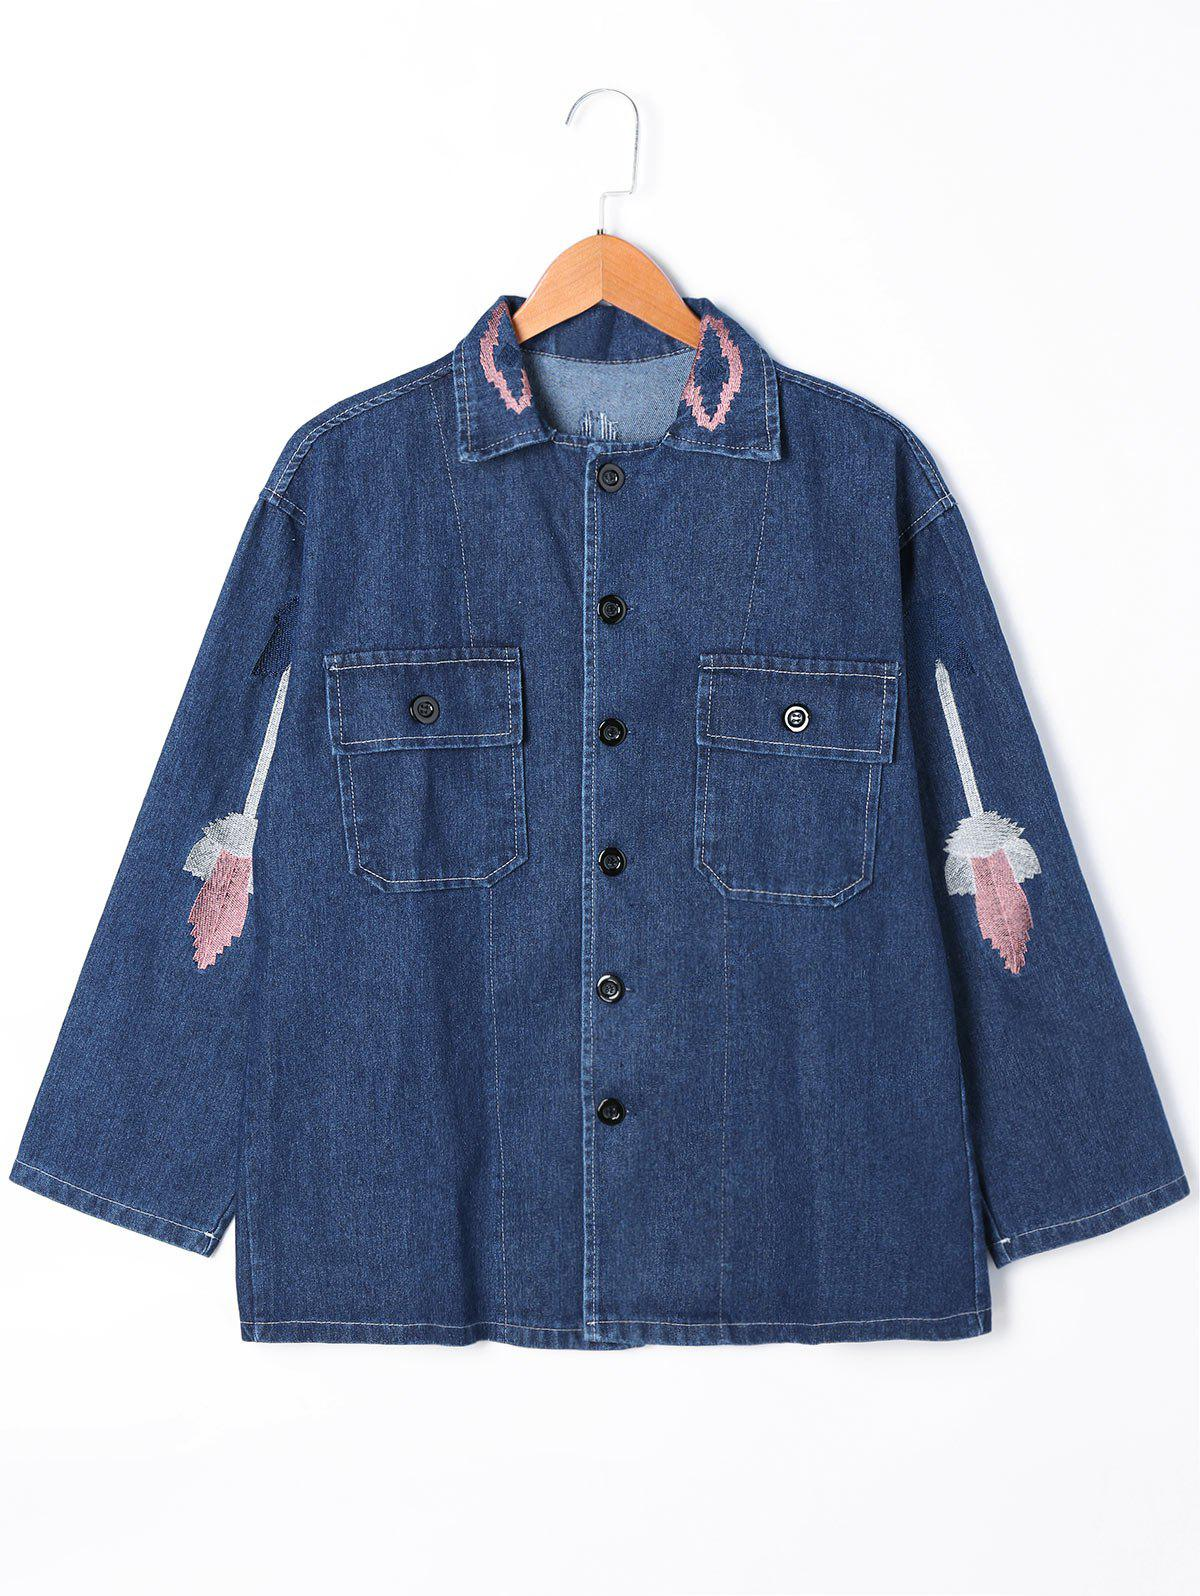 Veste en denim à poches à rabat à broderies - Denim Bleu 2XL